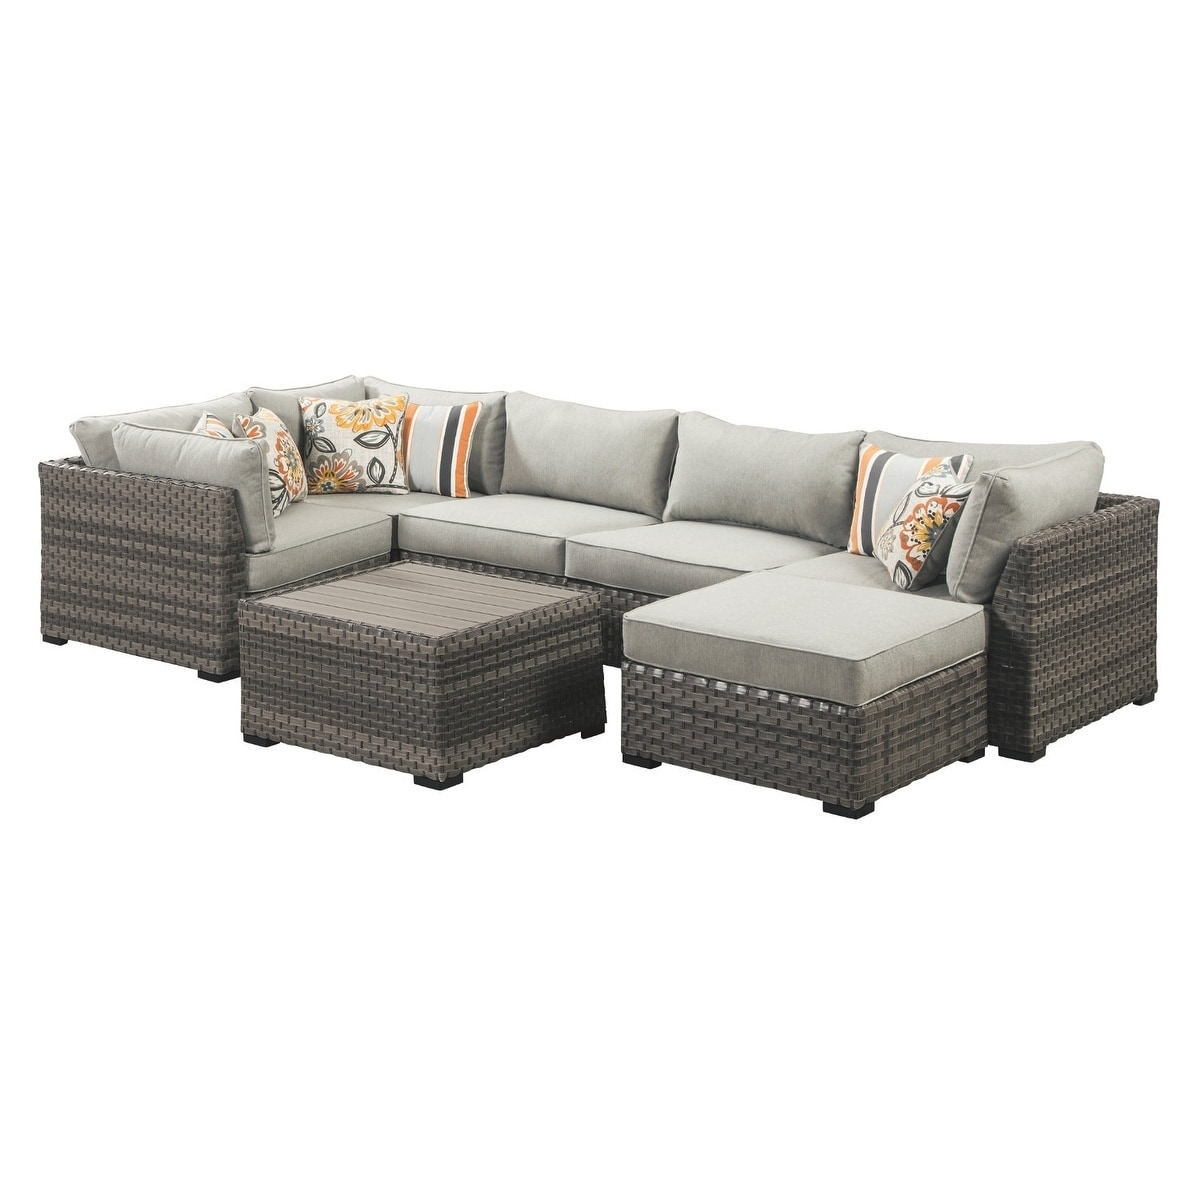 Amazing Spring Dew 7 Piece Sectional 3 Corner Chairs 2 Armless Chairs Cocktail Table Ottoman Grey Machost Co Dining Chair Design Ideas Machostcouk